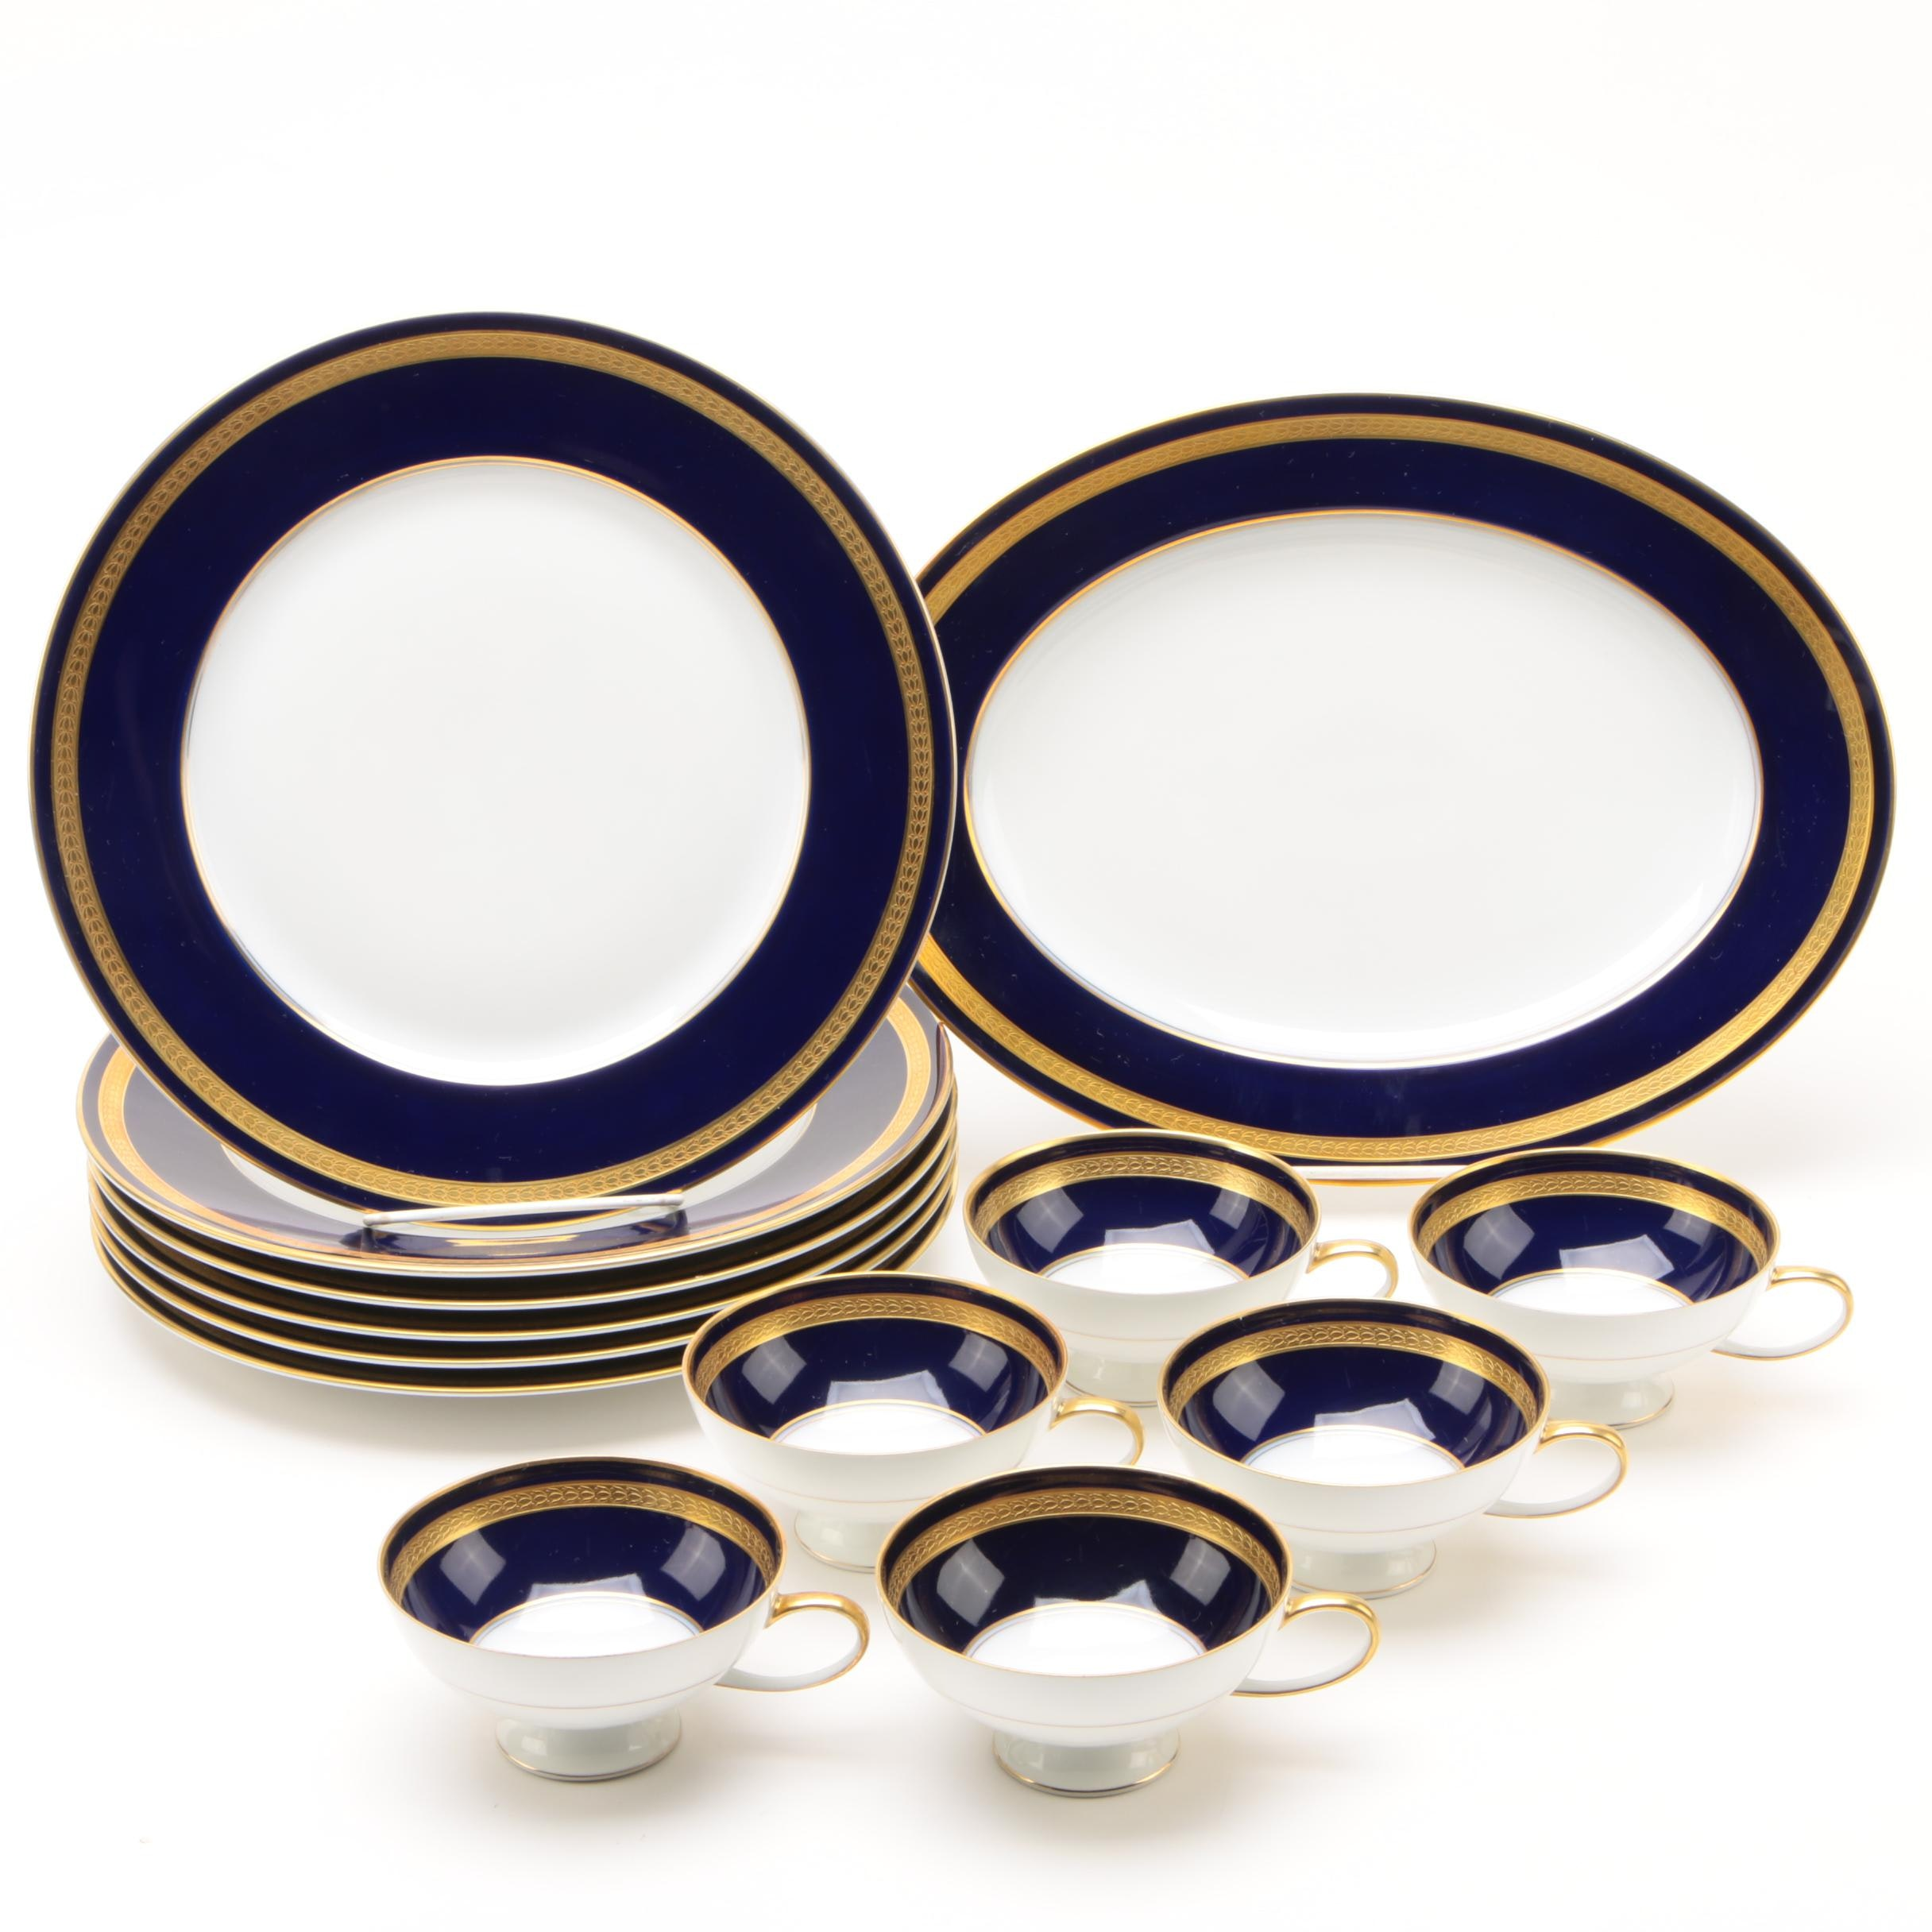 Rosenthal Cobalt and Gilt Porcelain Dinnerware